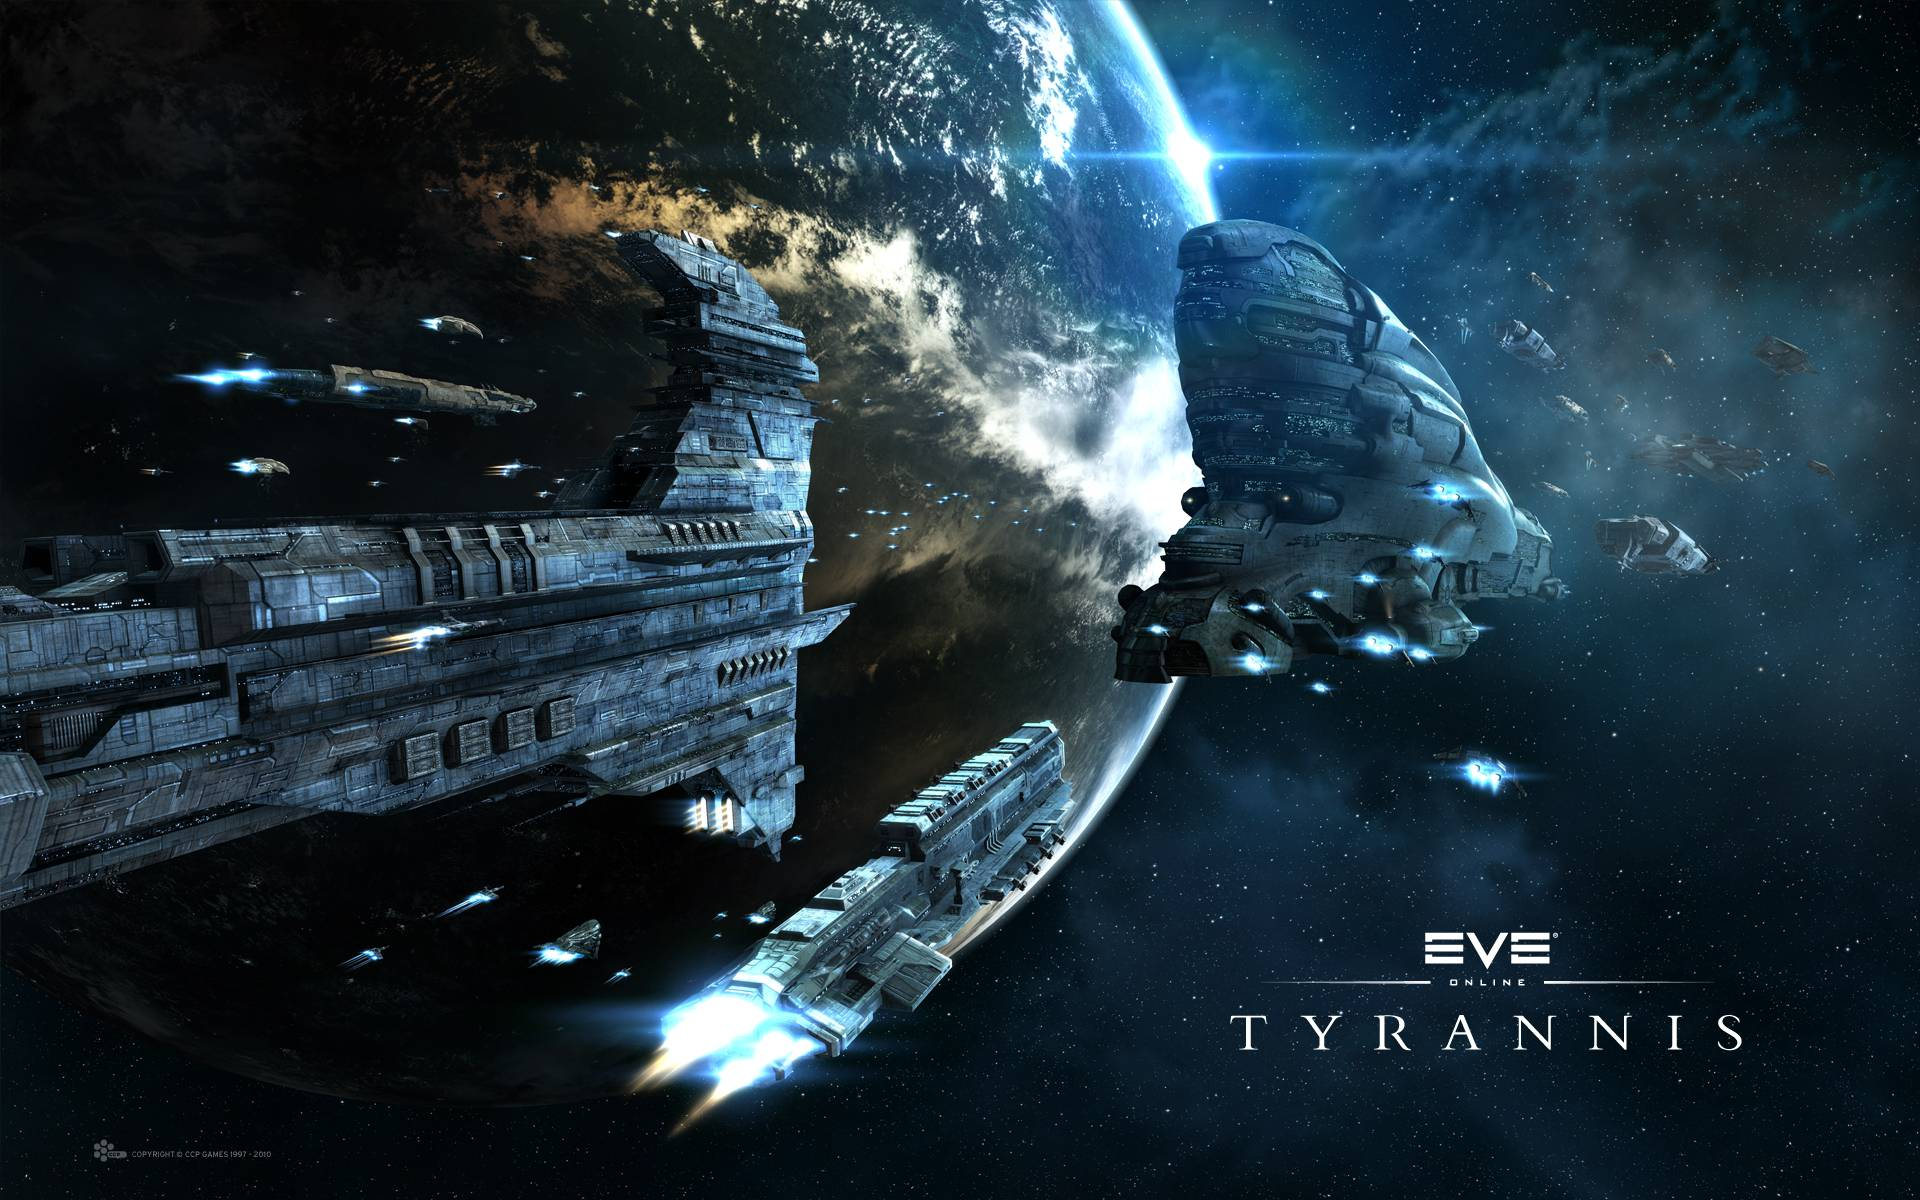 eve online wallpapers